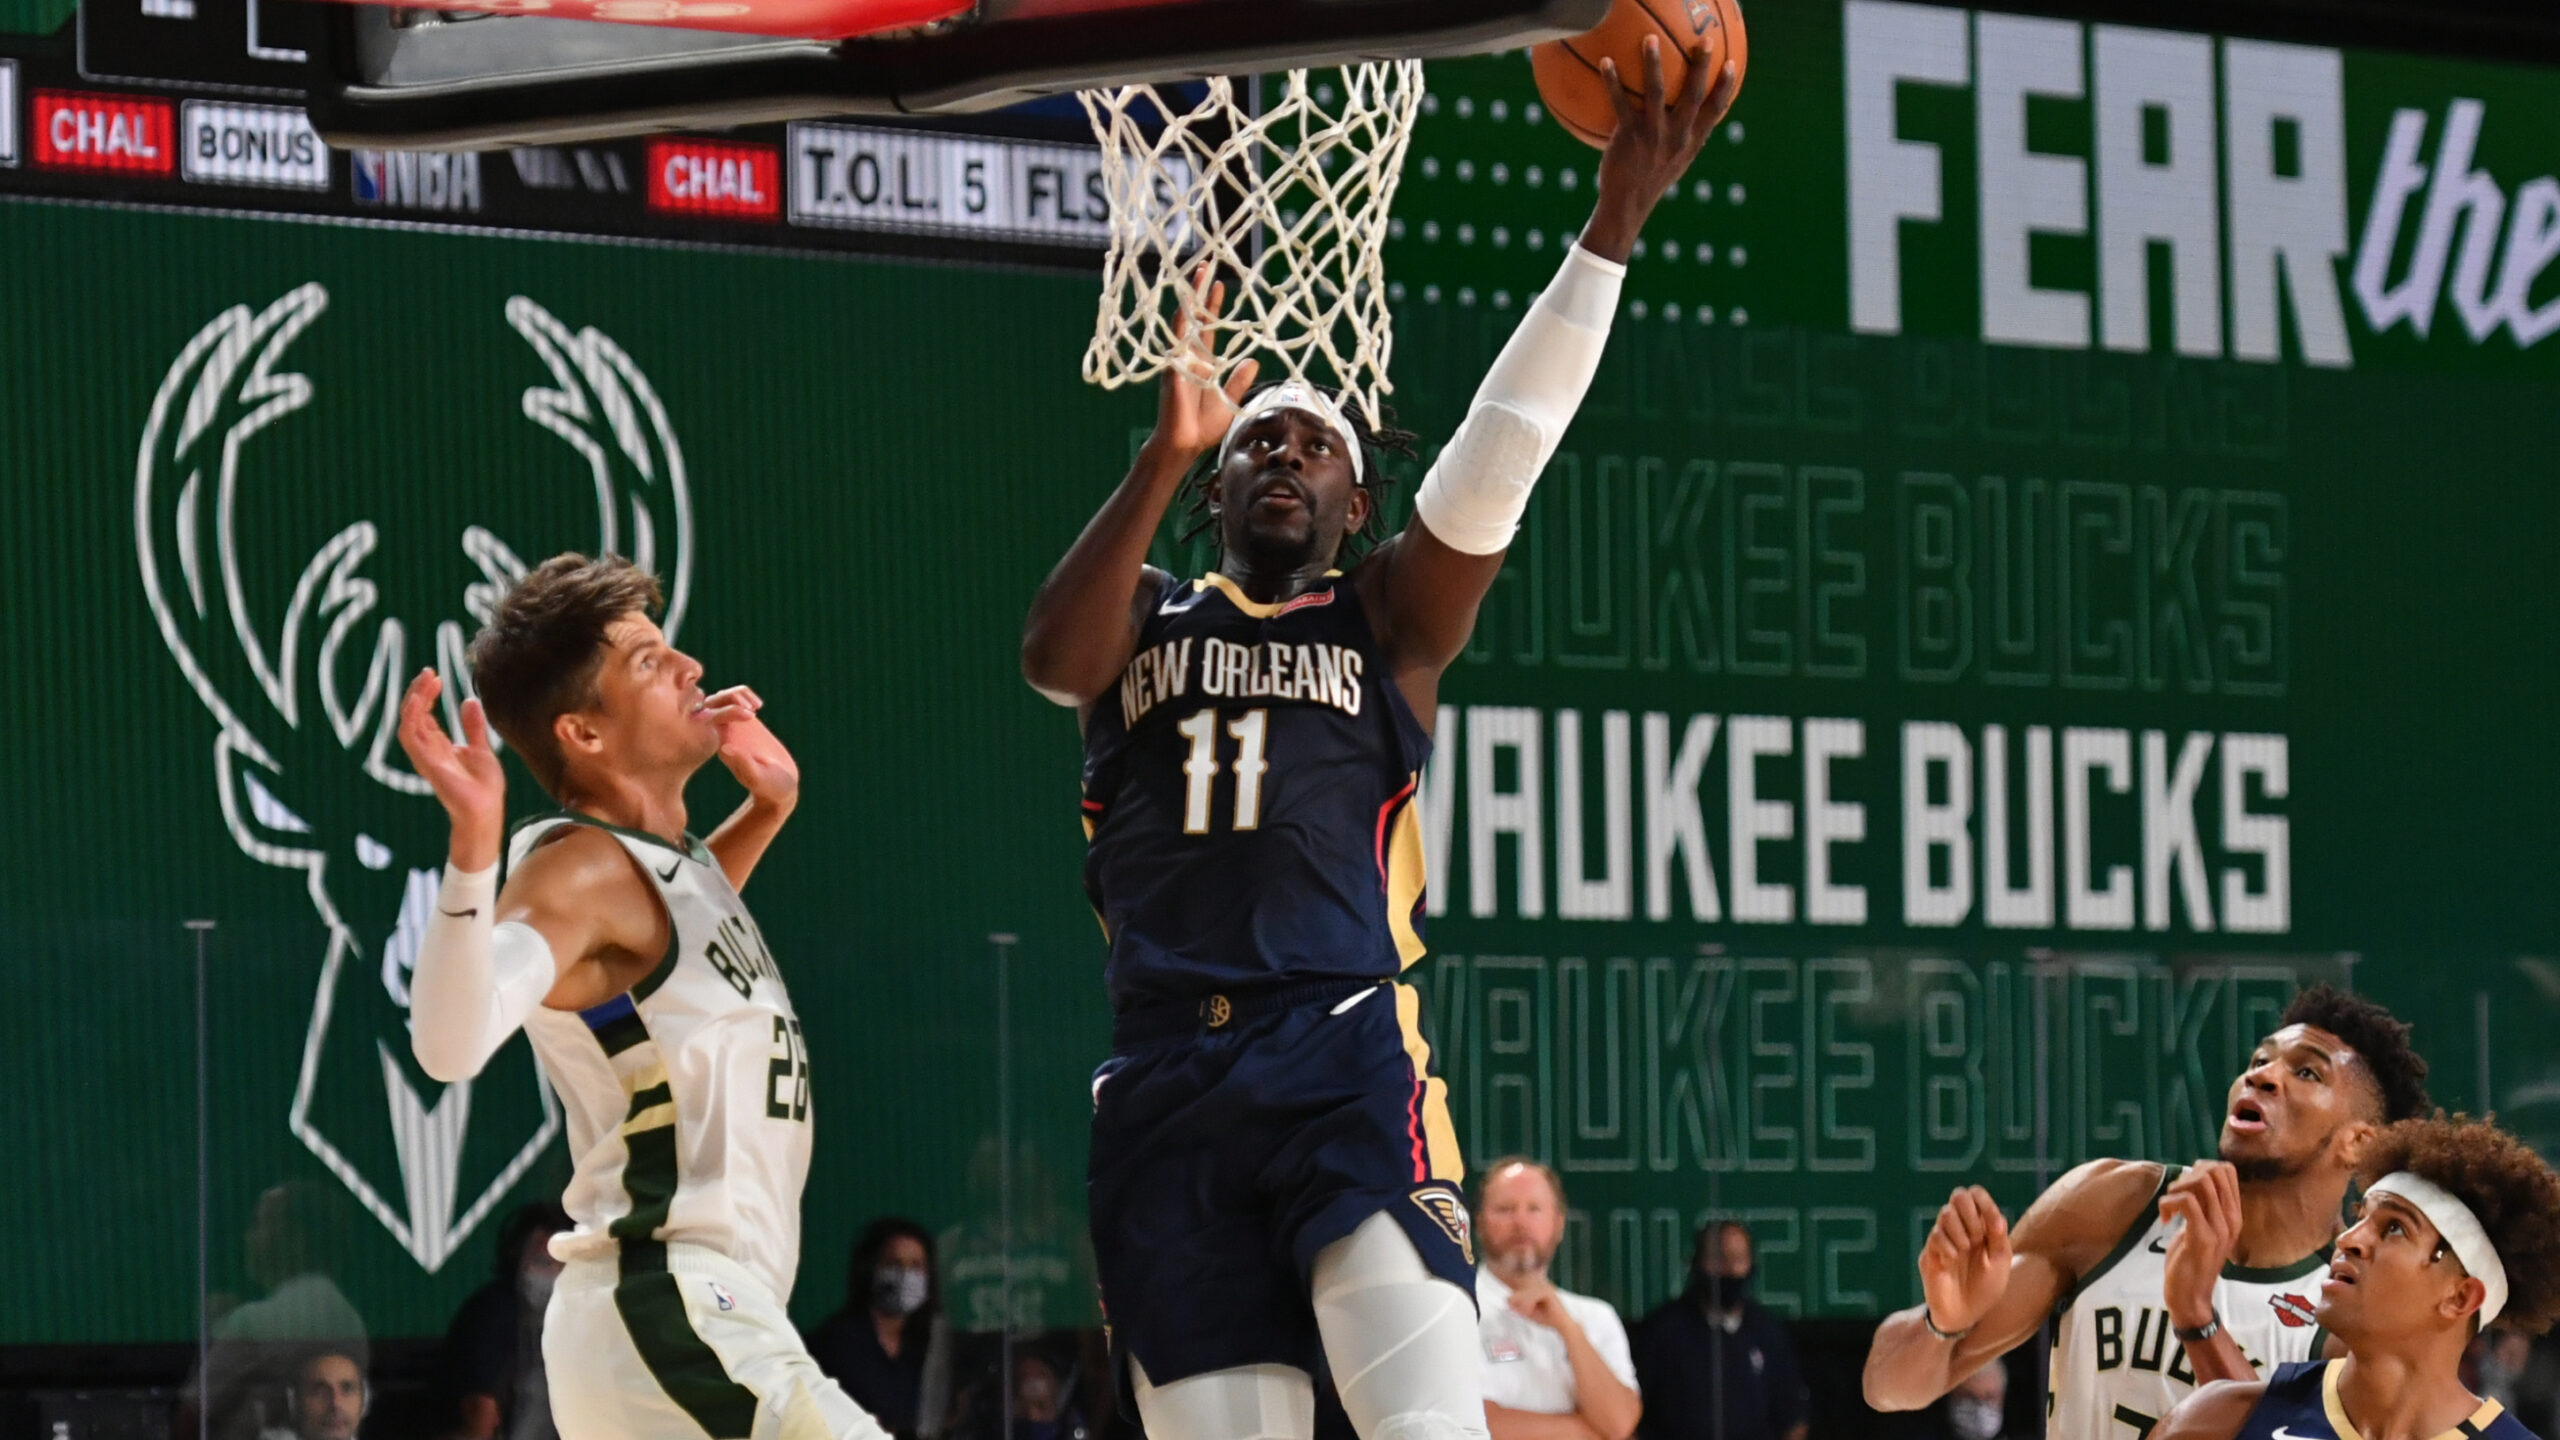 Jrue Holiday traded to Milwaukee in 4-team deal; Steven Adams to New Orleans